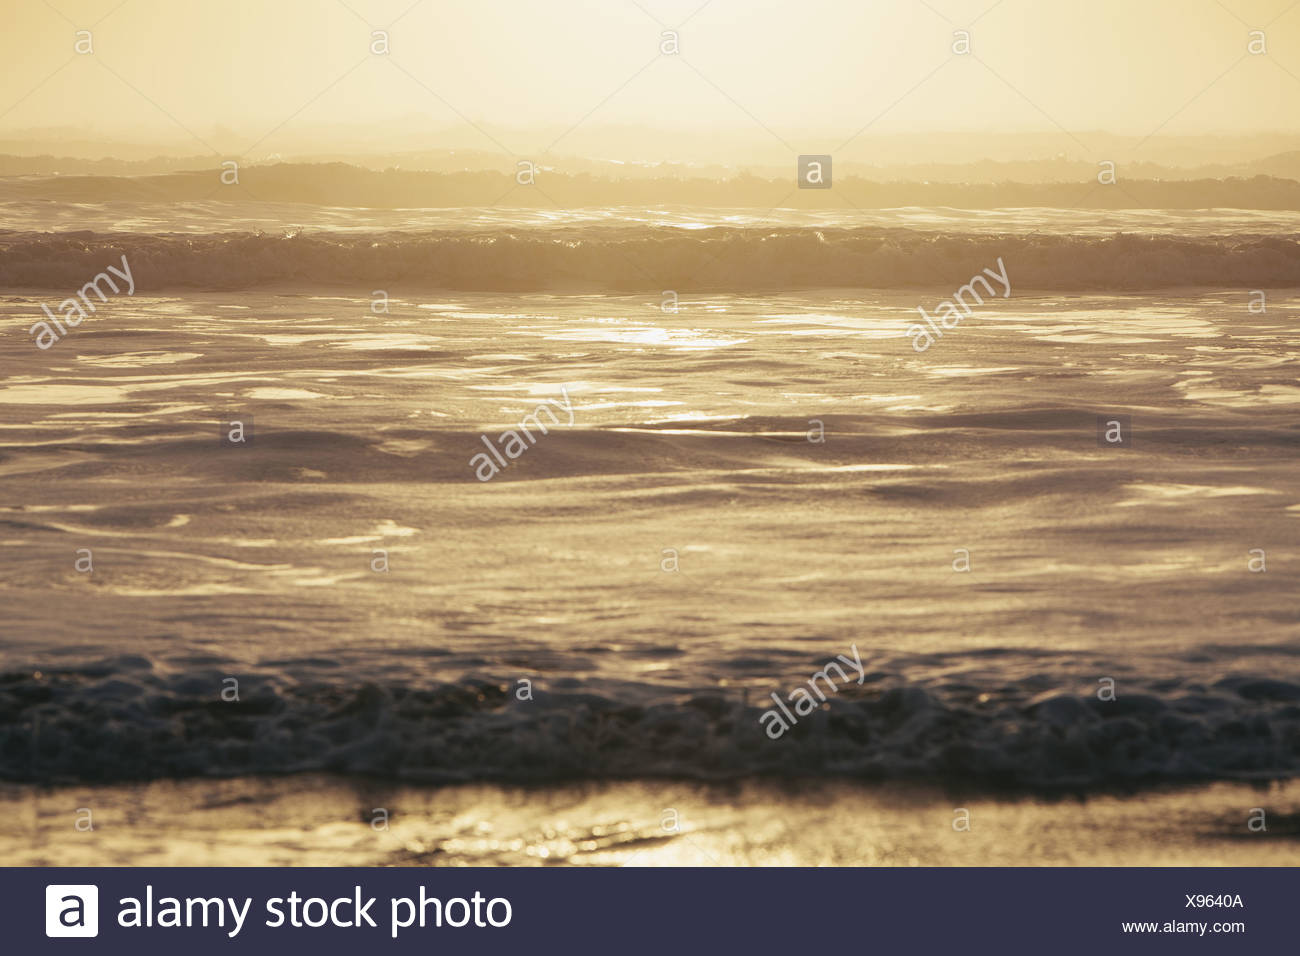 Seascape at dusk, Waves breaking on the shore. Tidal zone. Off the shores of the Olympic National park, in Washington, USA - Stock Image